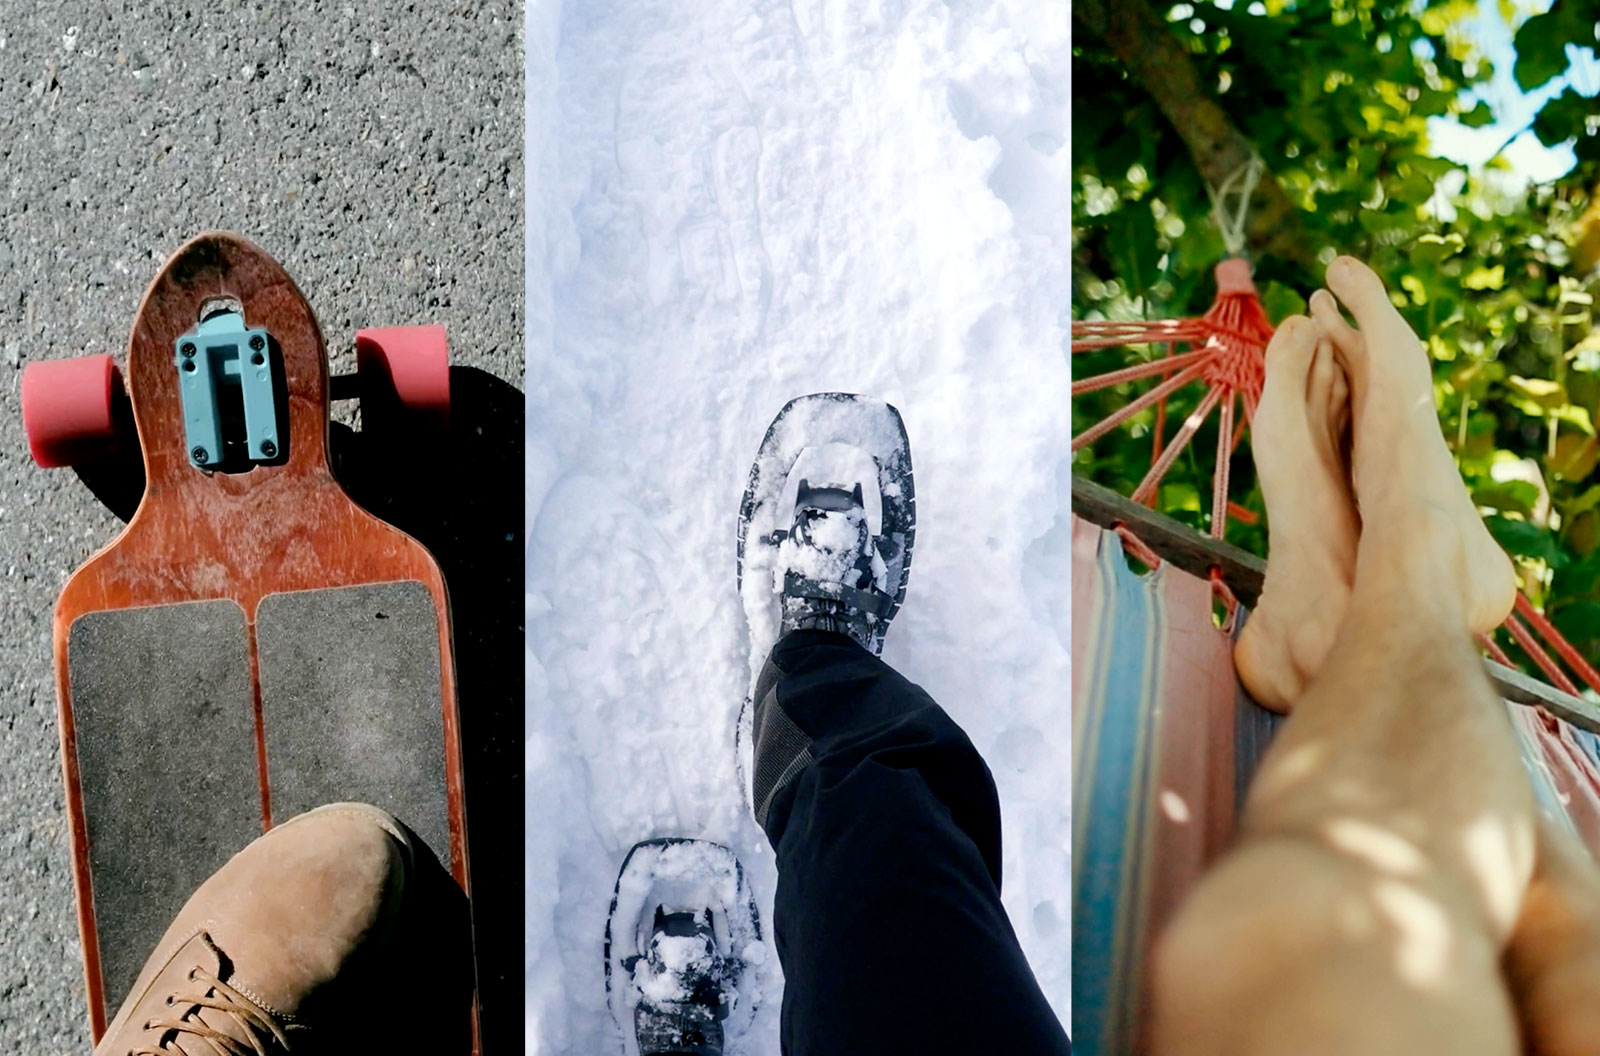 Mosaic showing a skateboarder, someone's boots hiking in the snow, and someone relaxing on a hammock